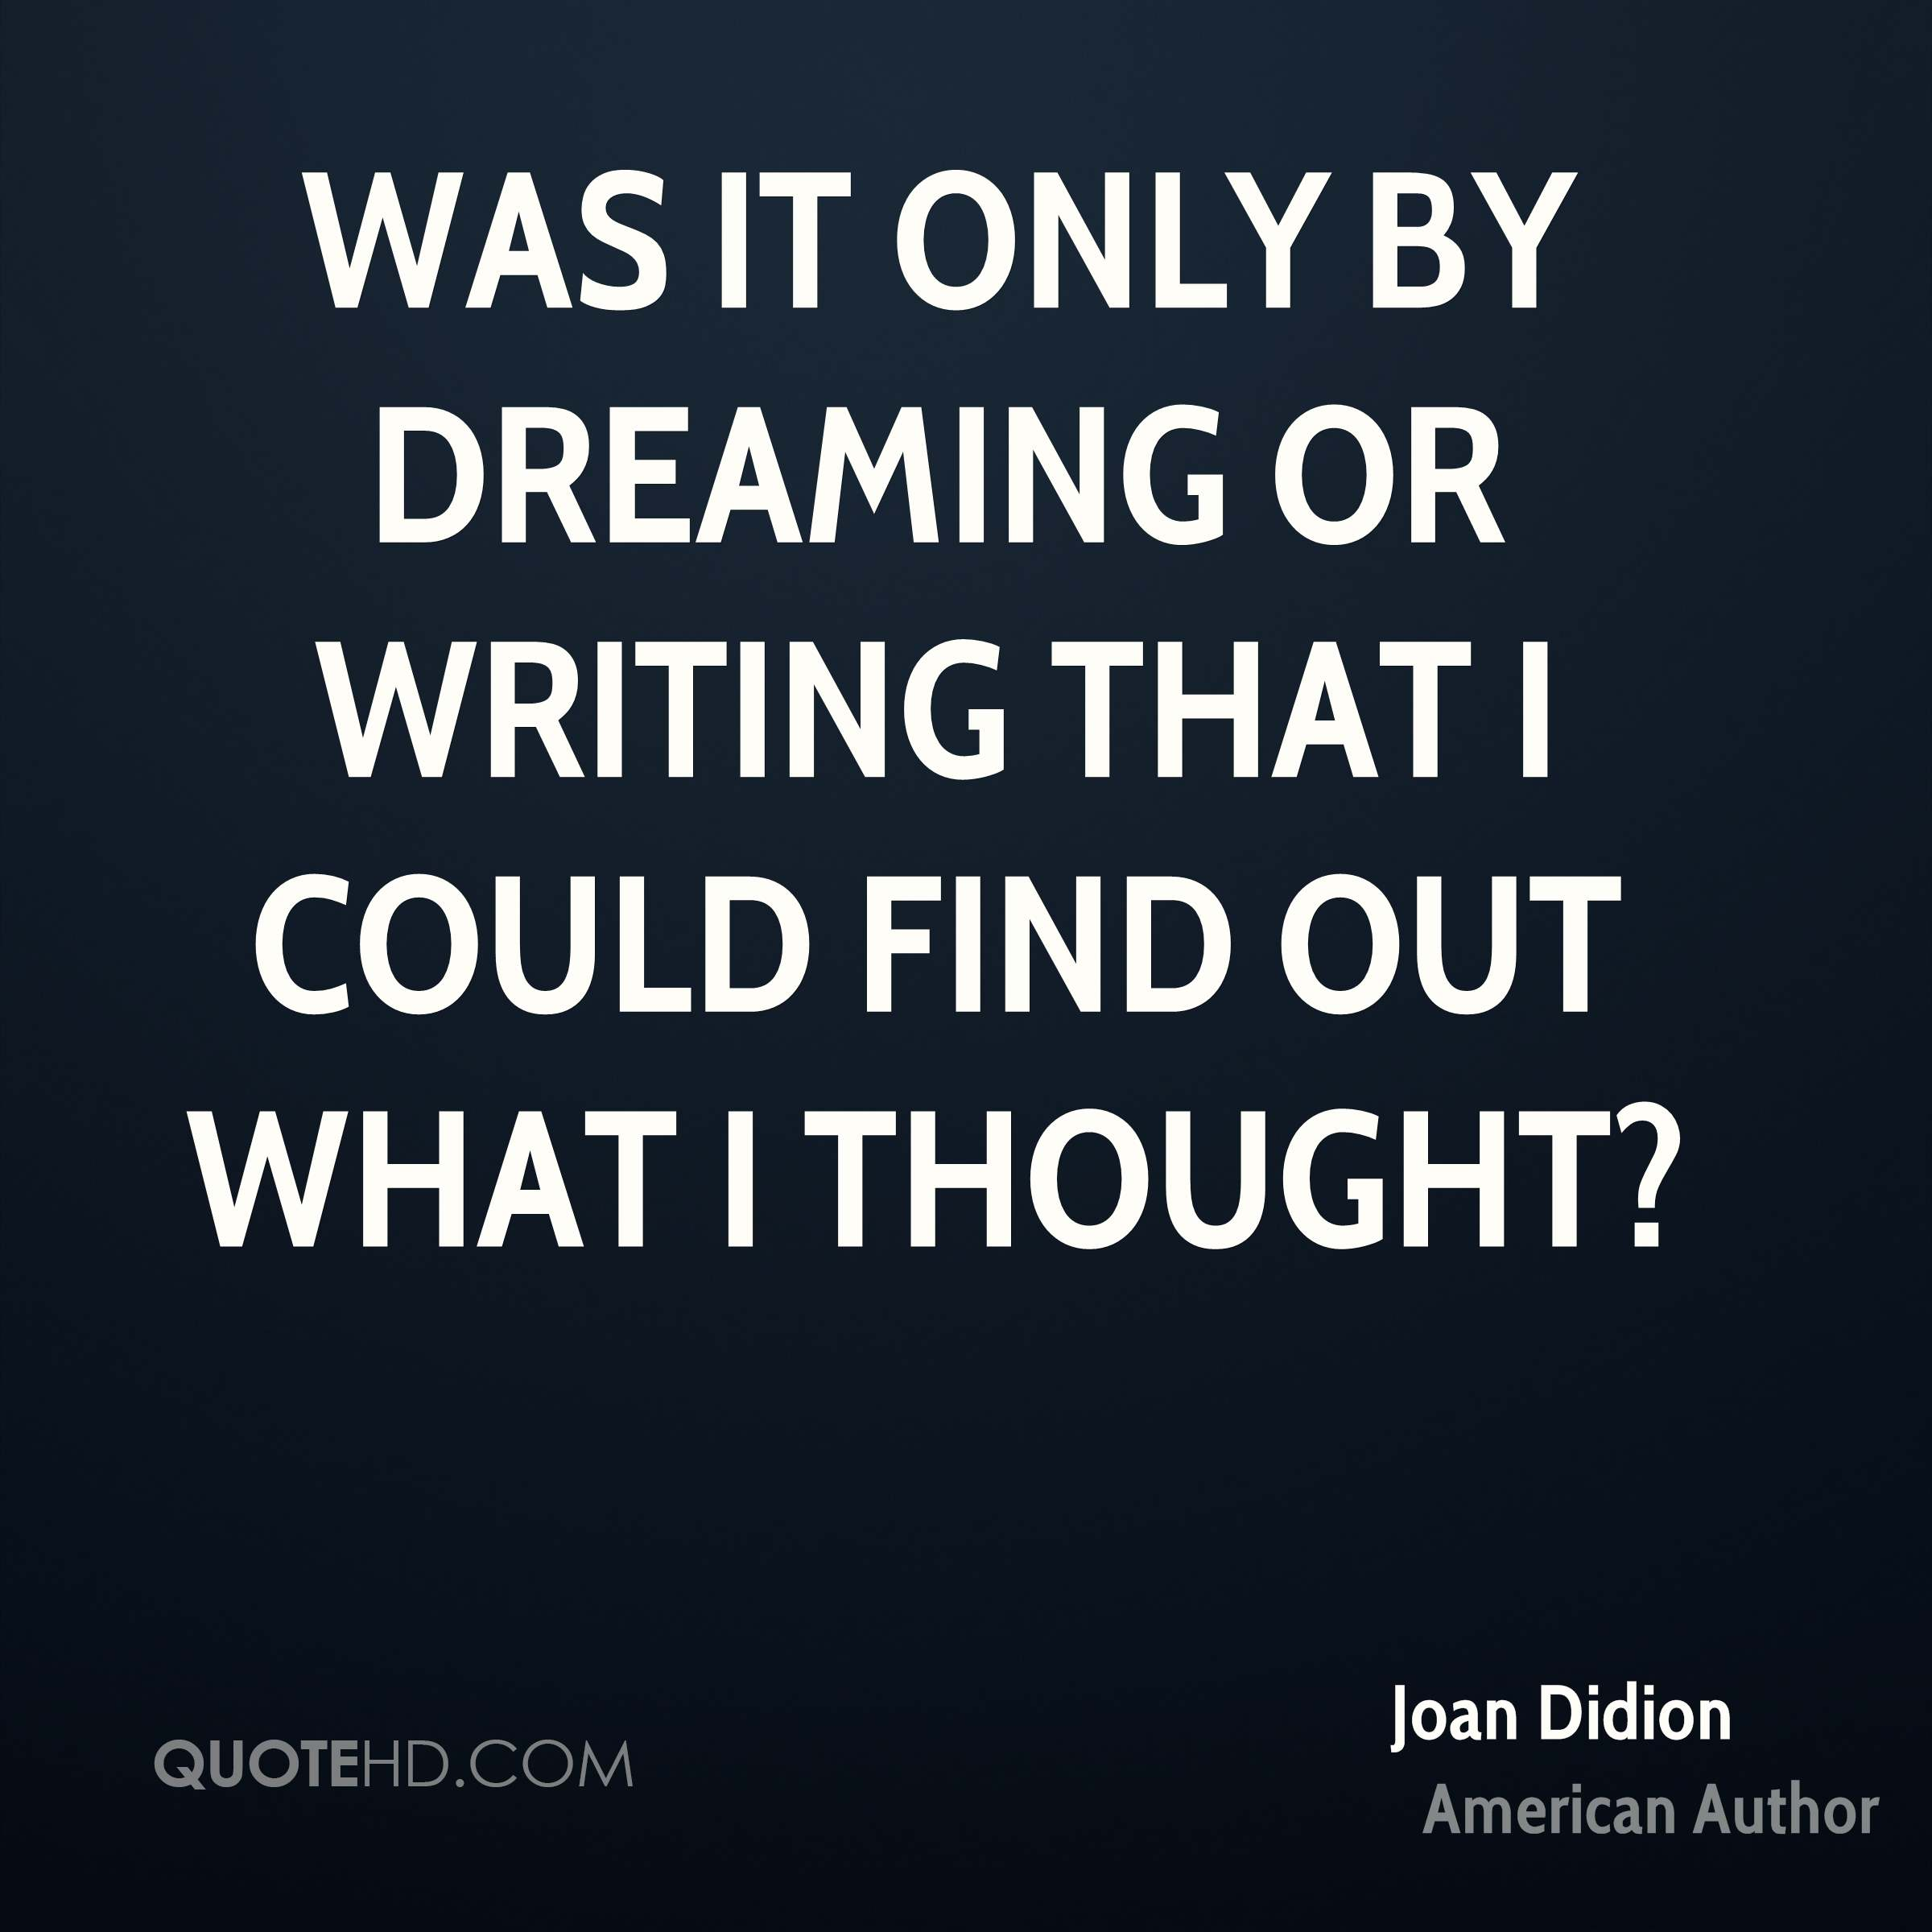 Was it only by dreaming or writing that I could find out what I thought?